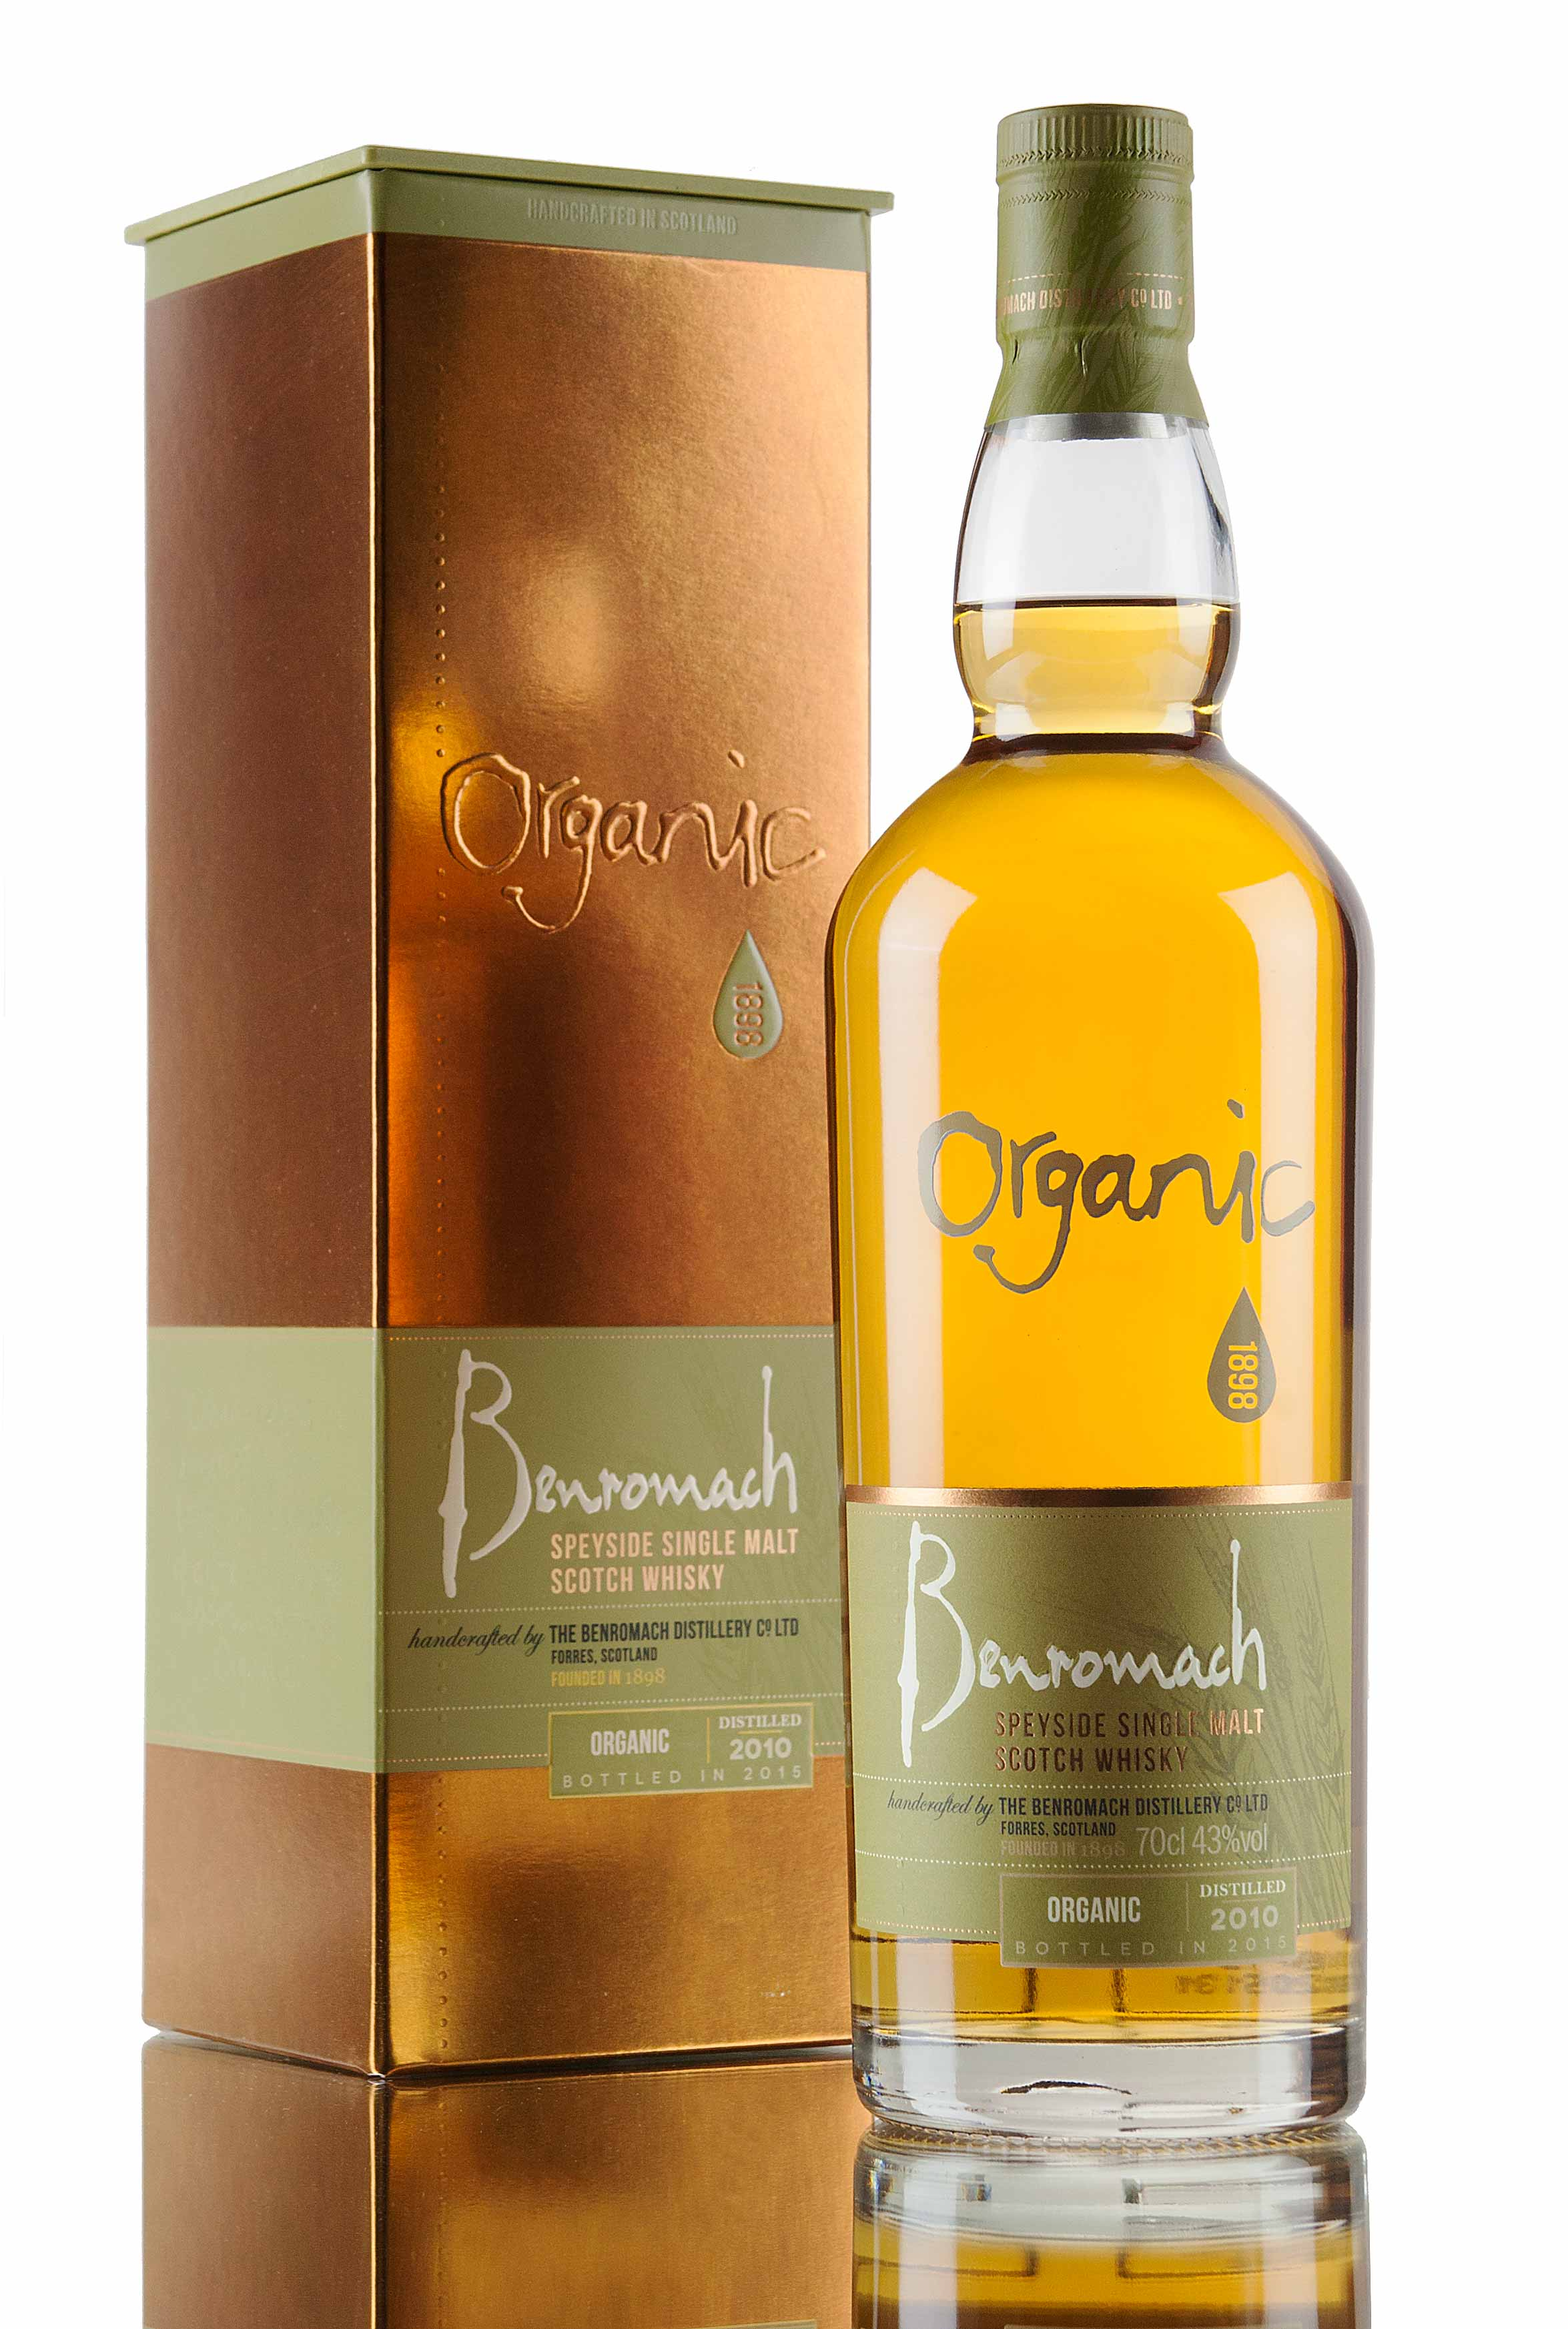 Benromach Organic 2010 / Bottled 2015